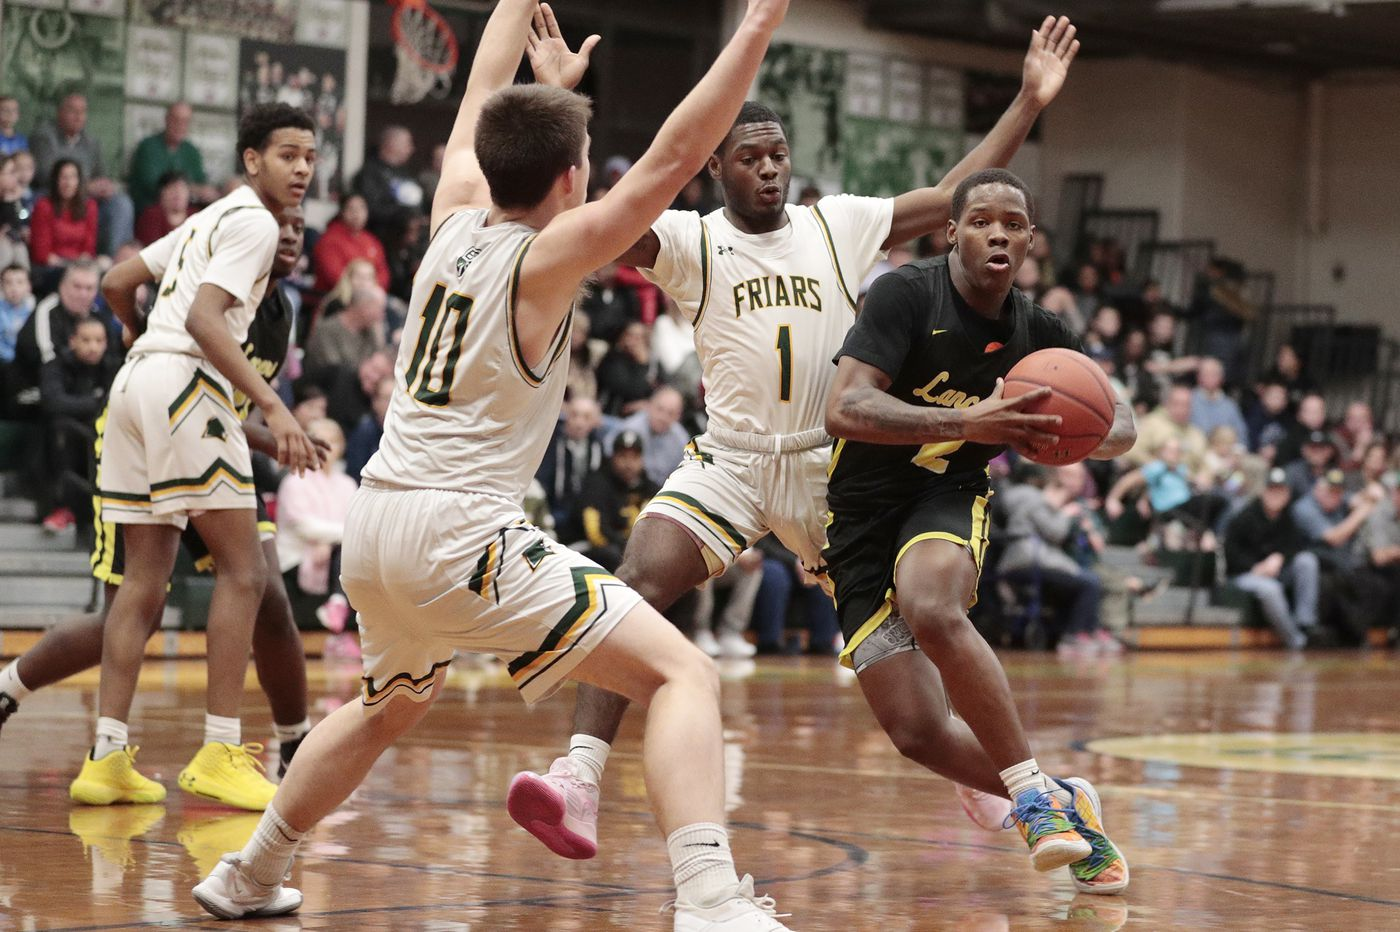 Breaking down the Philadelphia Catholic League boys' basketball quarterfinals